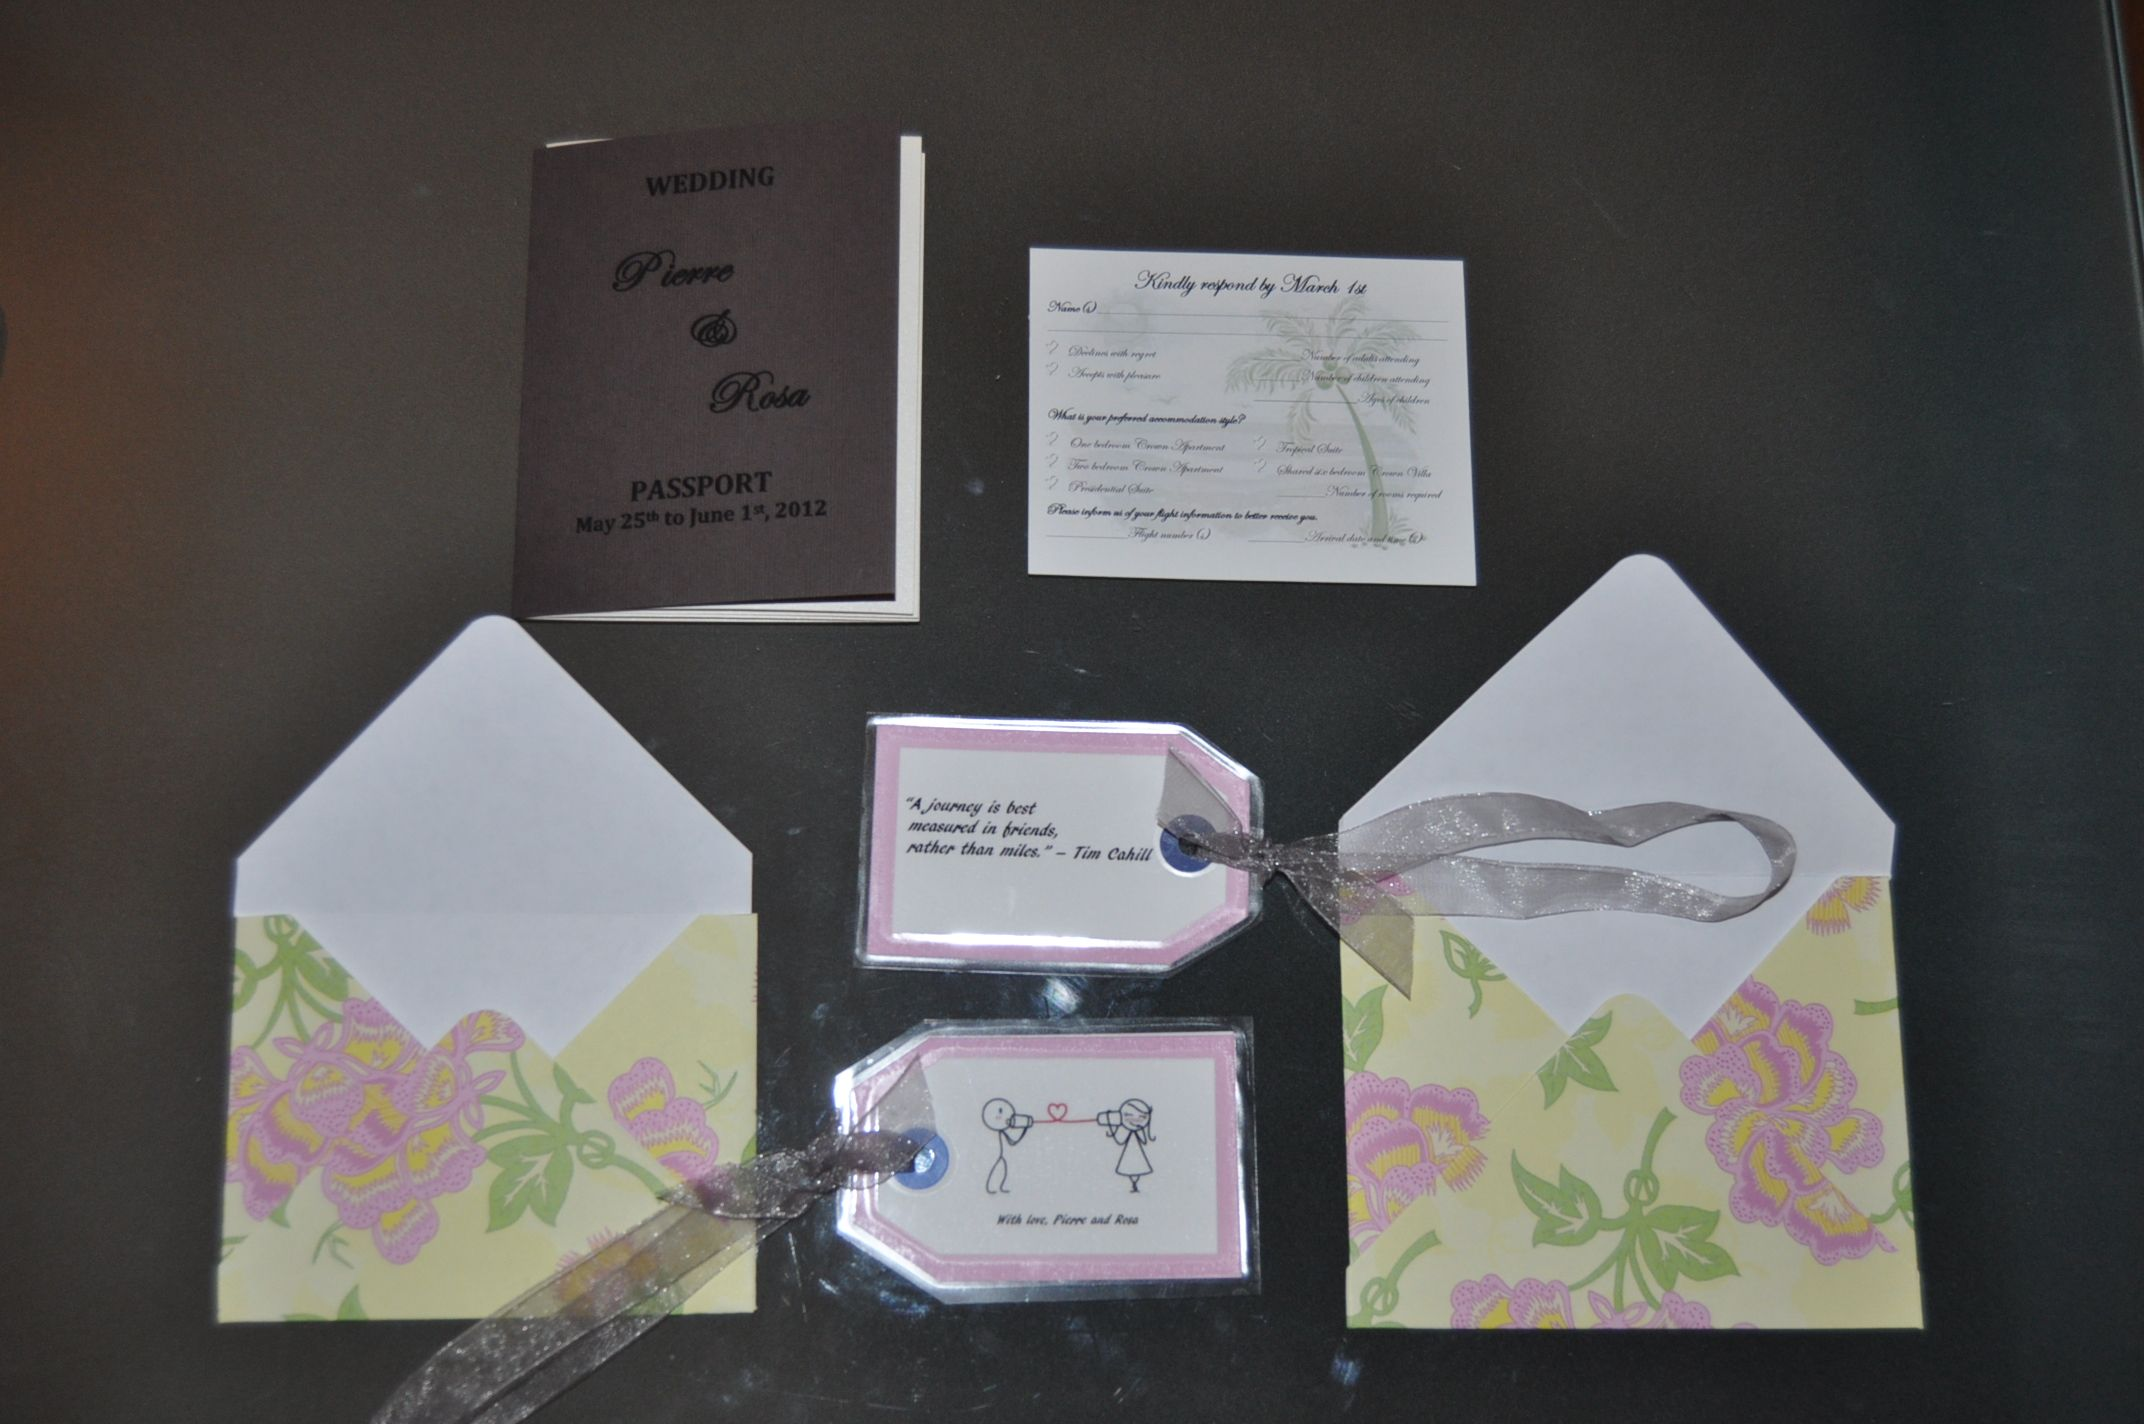 Our Complete Wedding Invitation Package Pport Reply Card With Envelope Luggage Tags And Larger